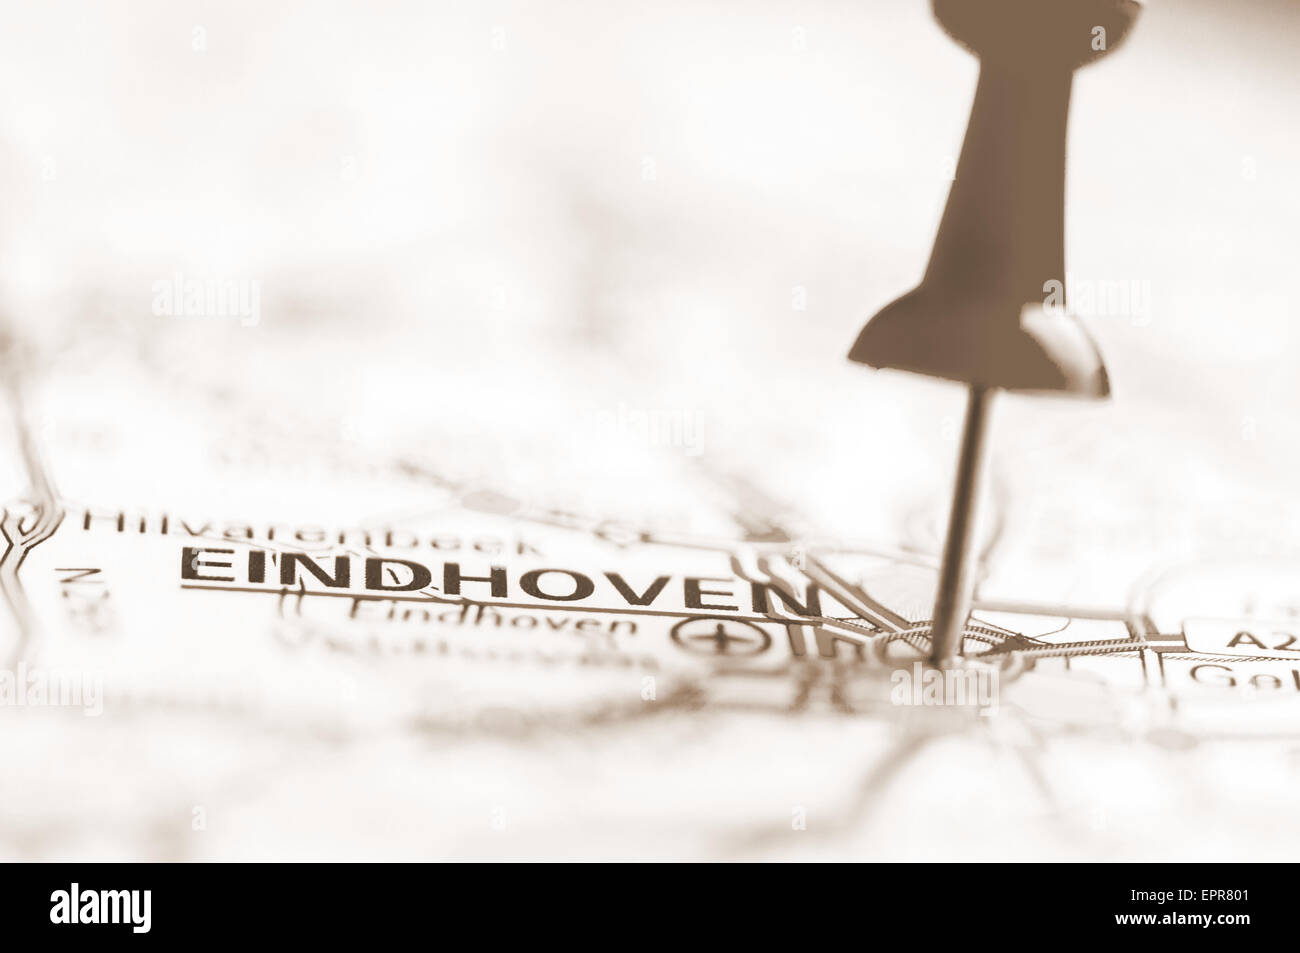 Pushpin showing Eindhoven City On Map, Netherlands with ...